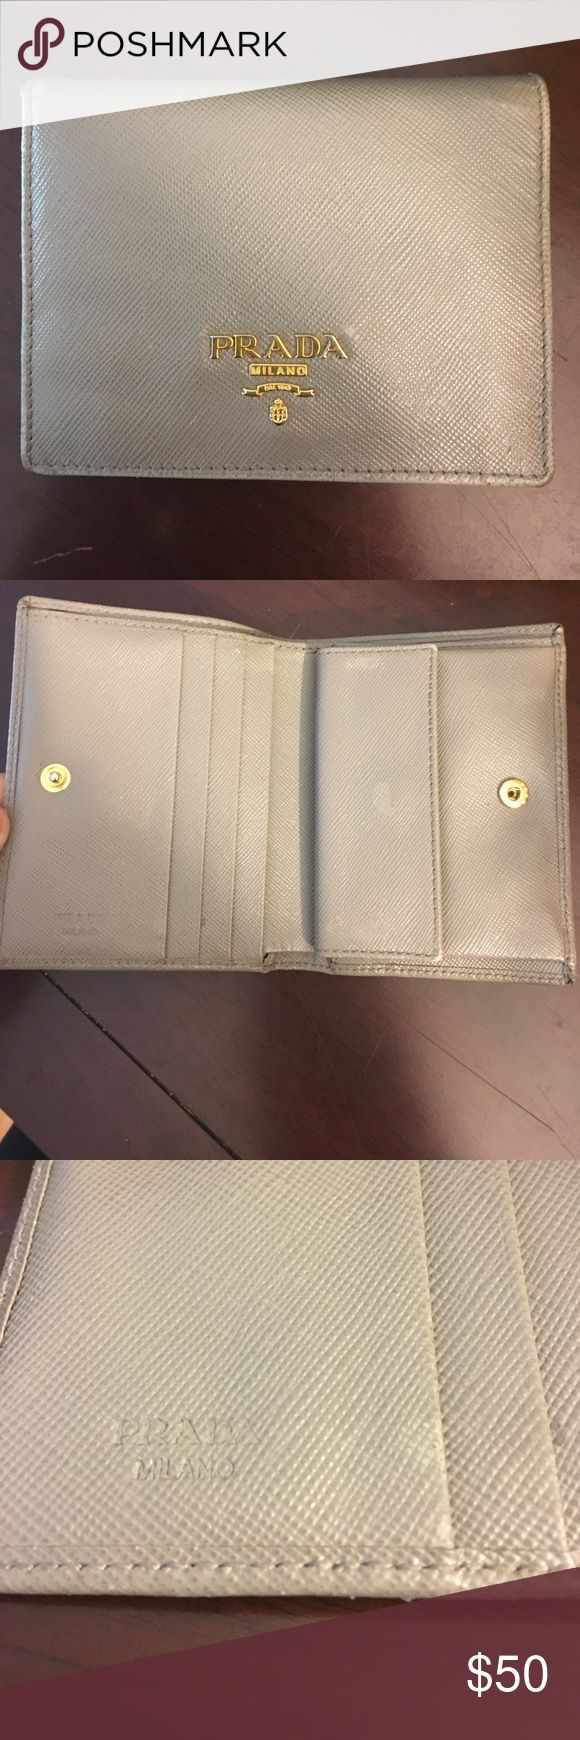 "Prada Mini Saffiano Leather Bifold Wallet in grey Mini Leather Logo Wallet In Textured Saffiano Leather Snap Closure, Goldtone Hardware, One Bill Compartment, Four Credit Card Slots, One Flap Coin Pocket, Leather Lining, 4.5""W X 3.25""H, Made In Italy Dust Bag And Authenticity Card MISSING. -> thus the low price (It is authentic though) Prada Bags Wallets"